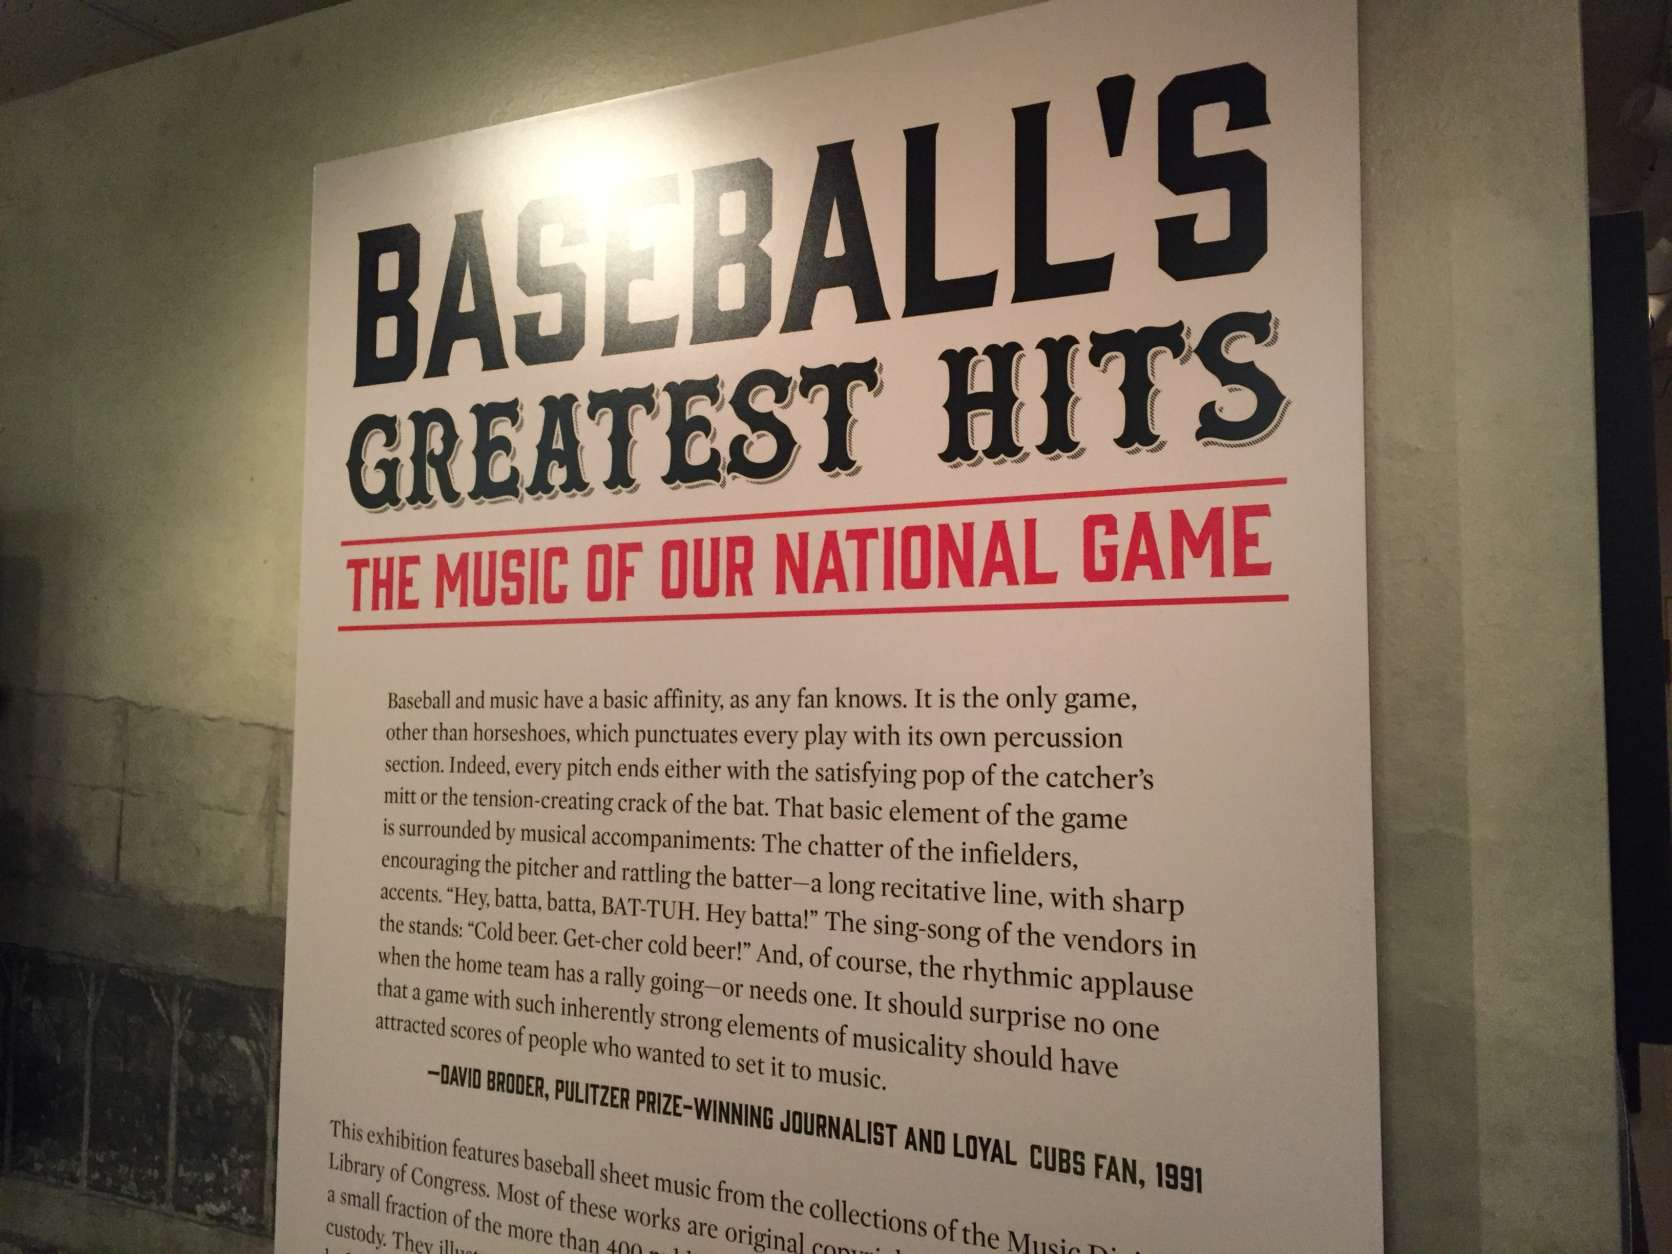 Quotes about the connection between baseball and music. (WTOP/Michelle Basch)